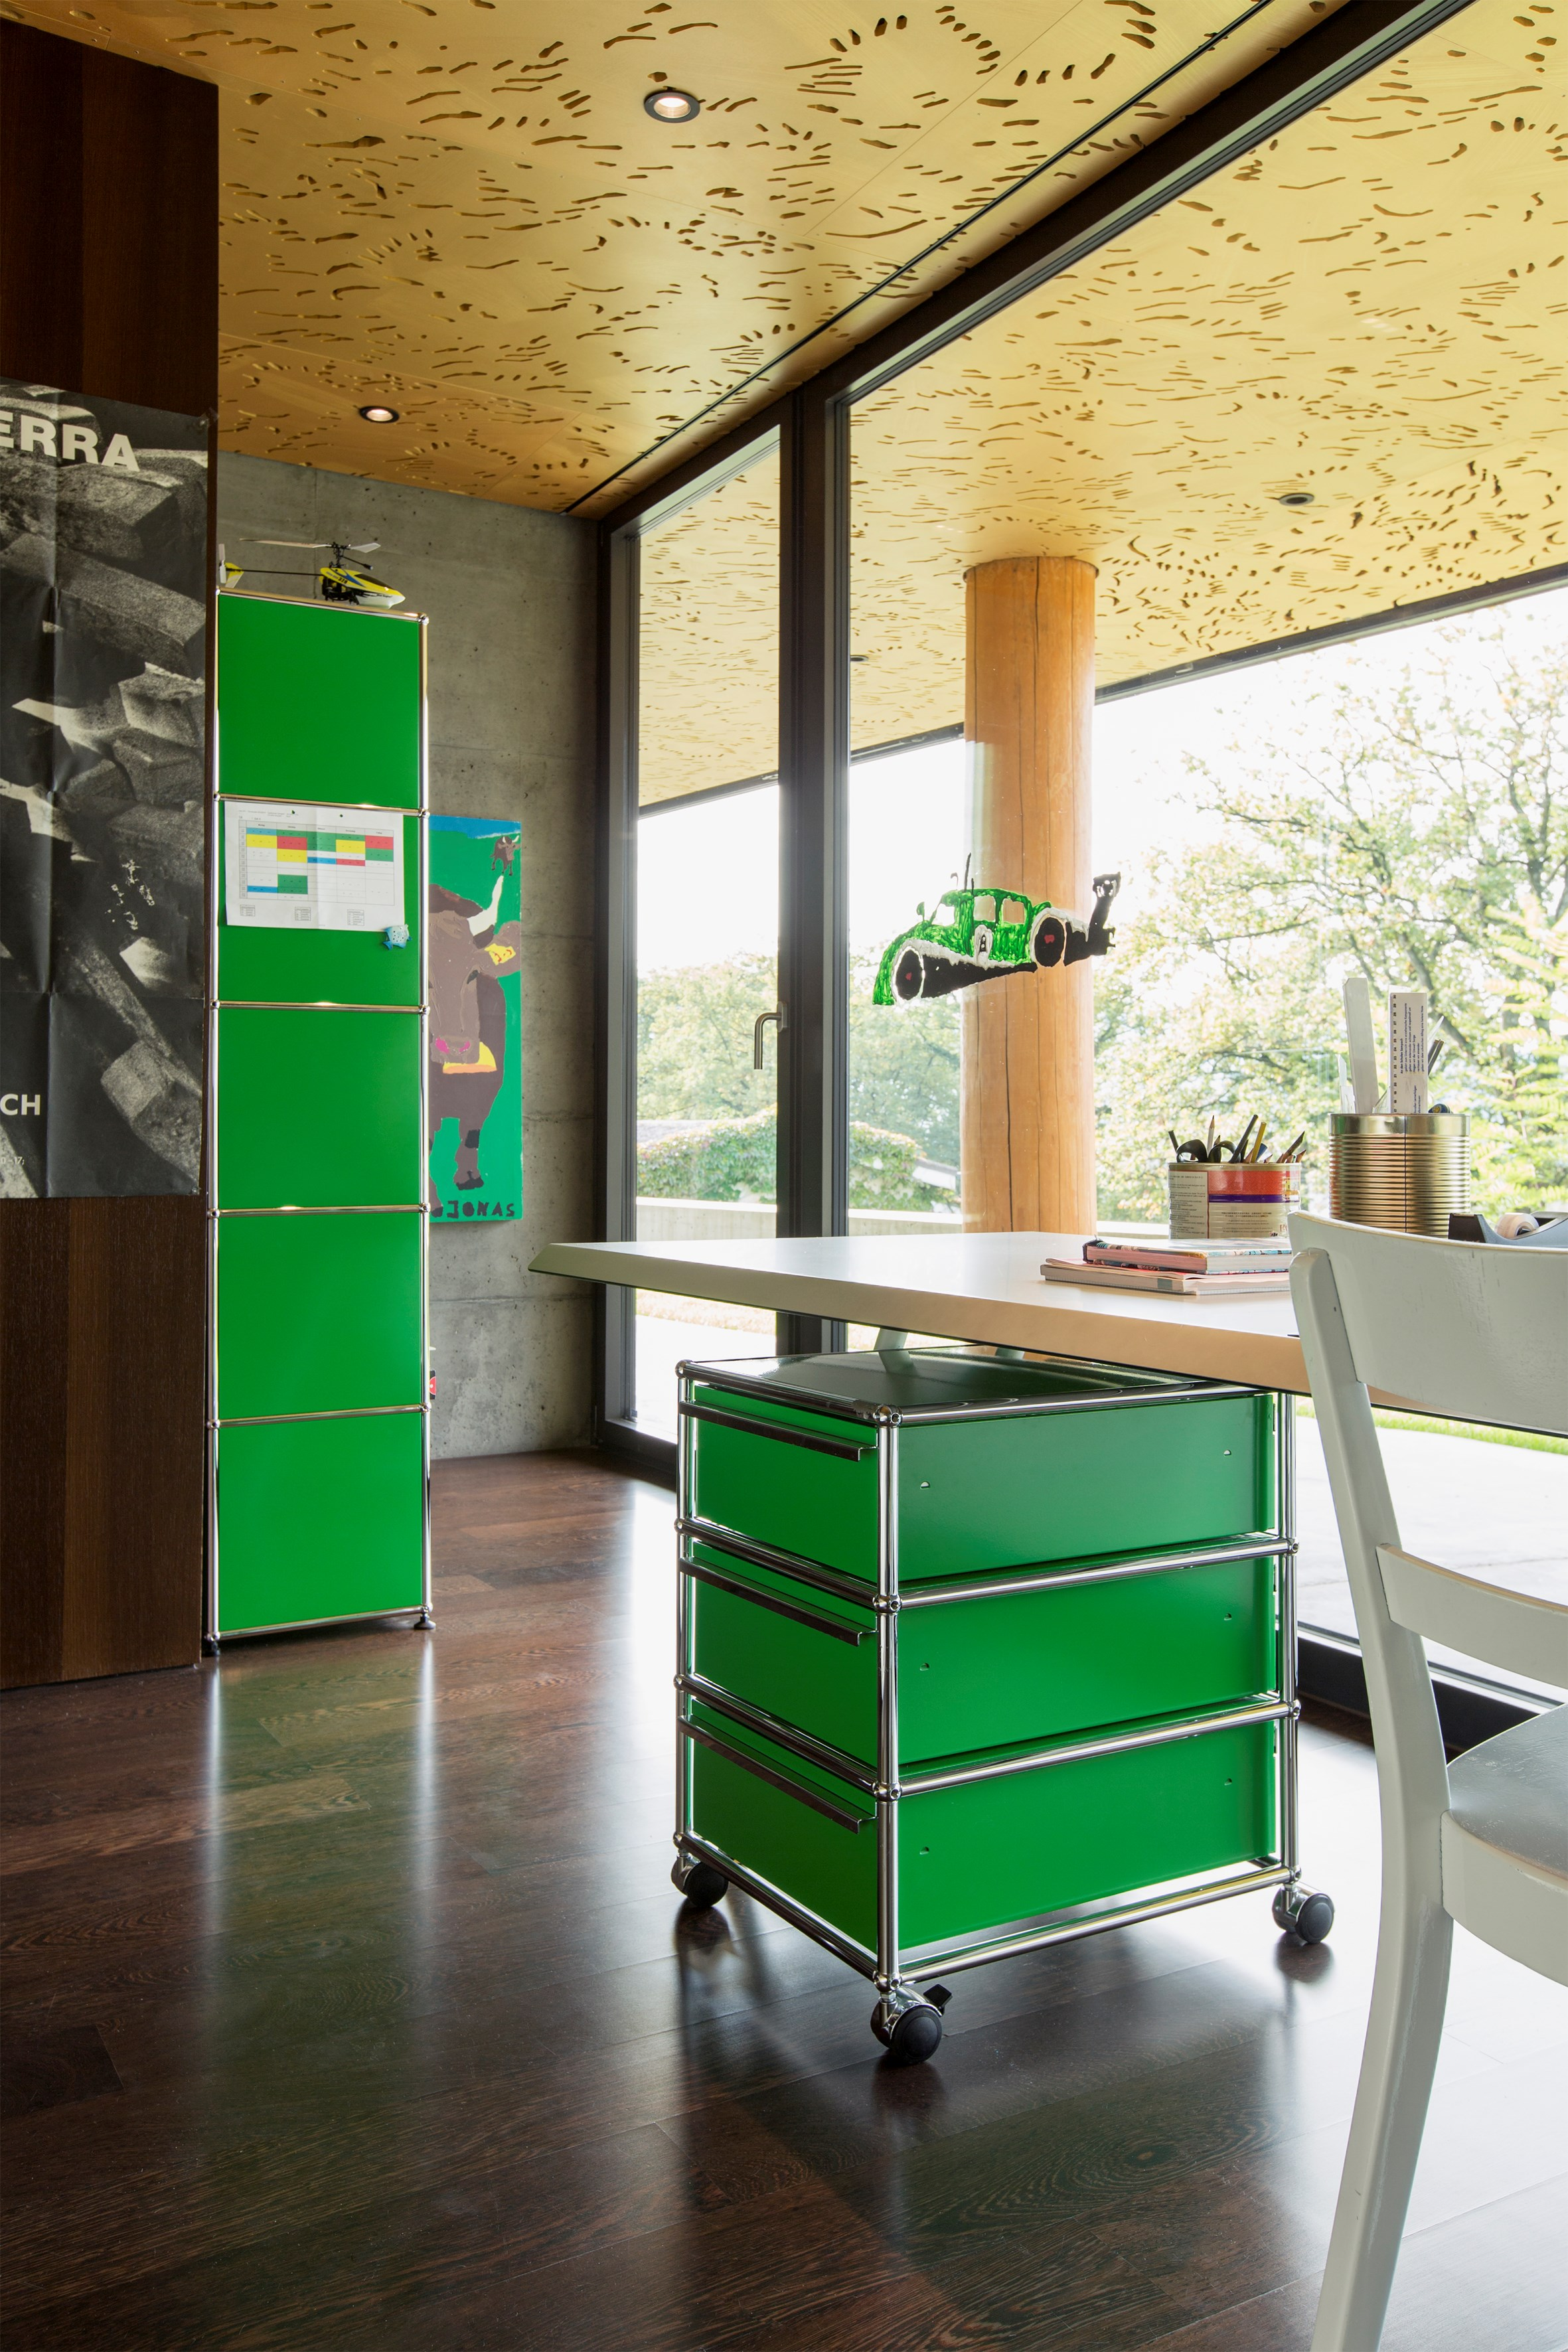 green usm pedestal and storage shelves in a childrens rooms